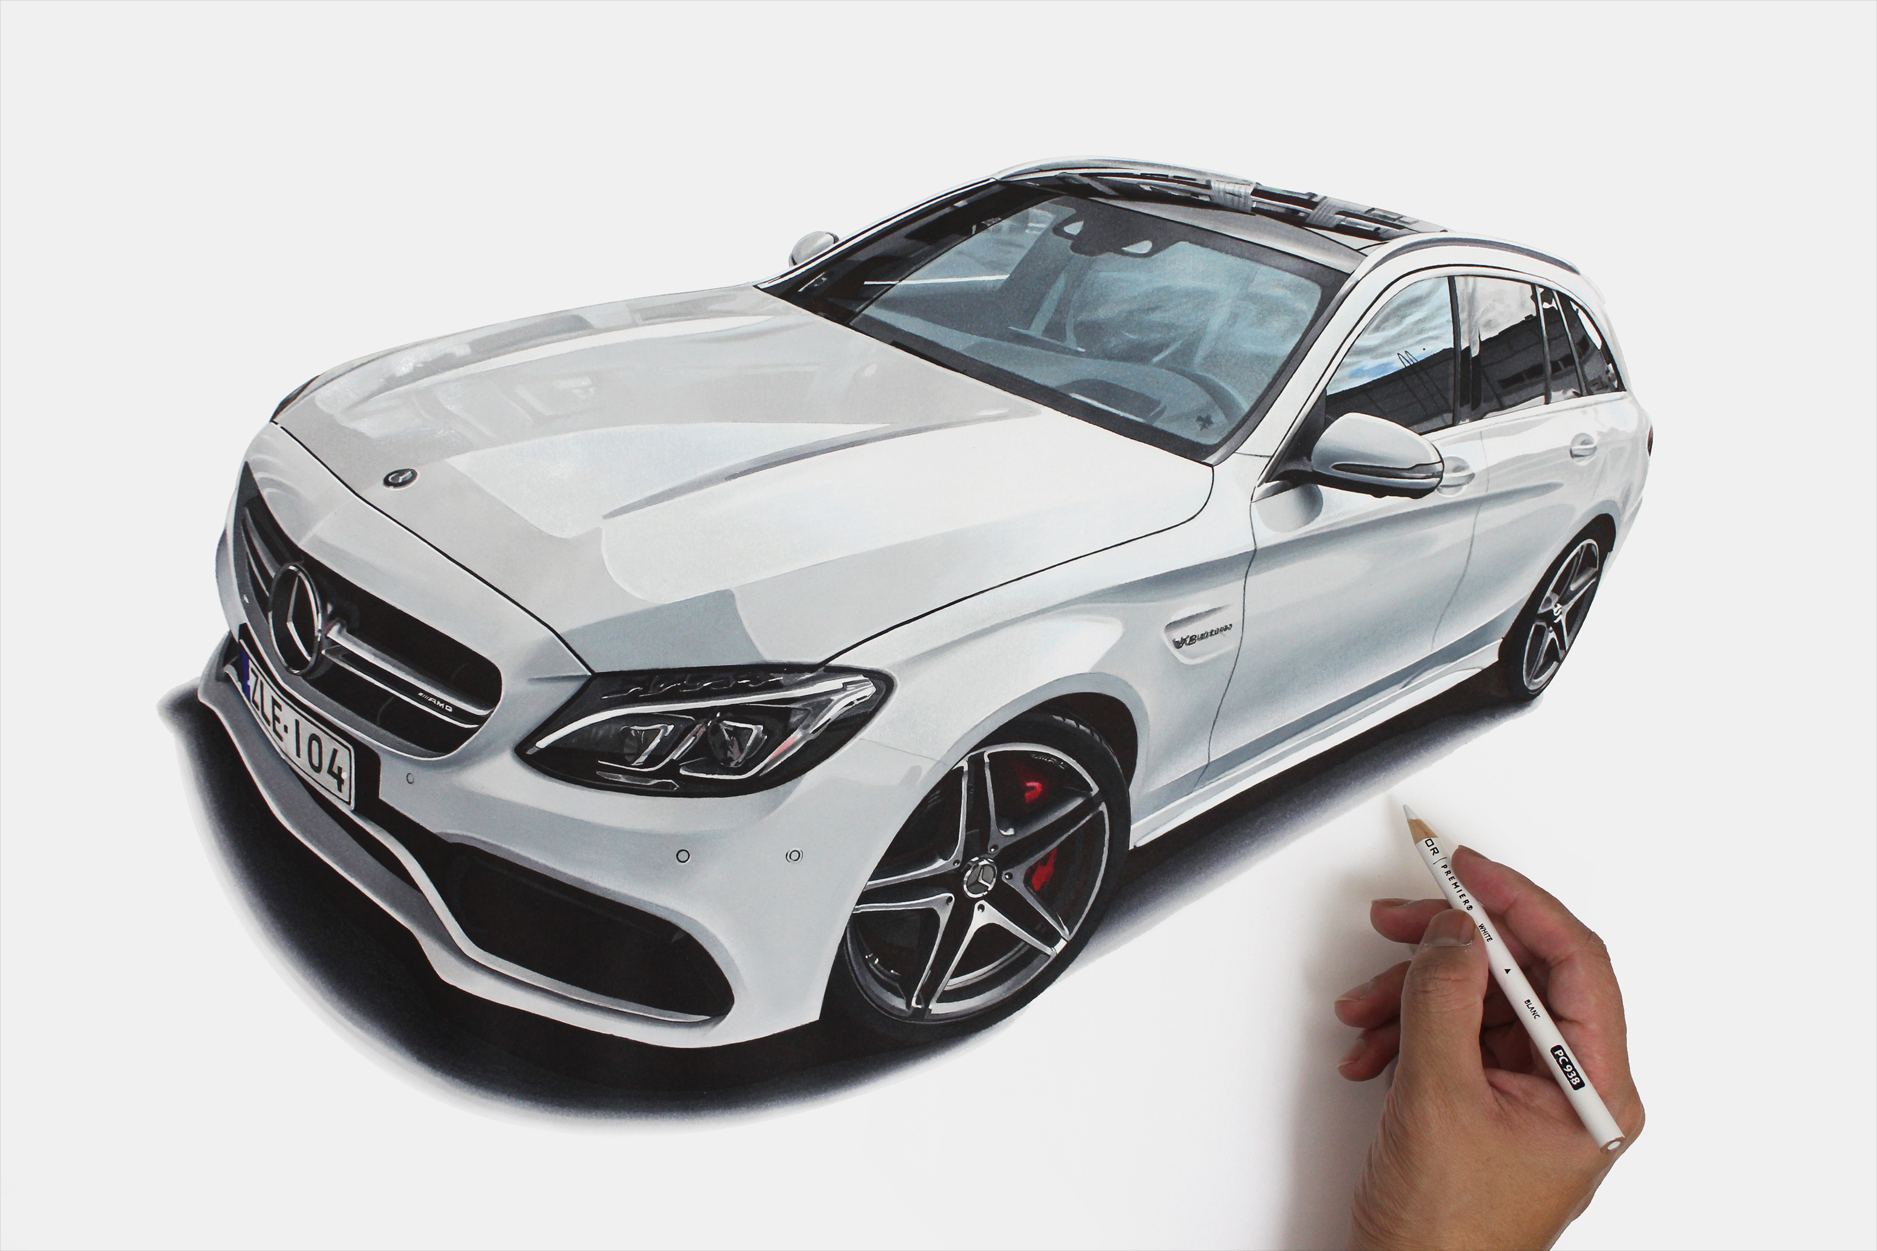 This kind of drawing and design talent hasn't grown overnight, what's your background story? ?